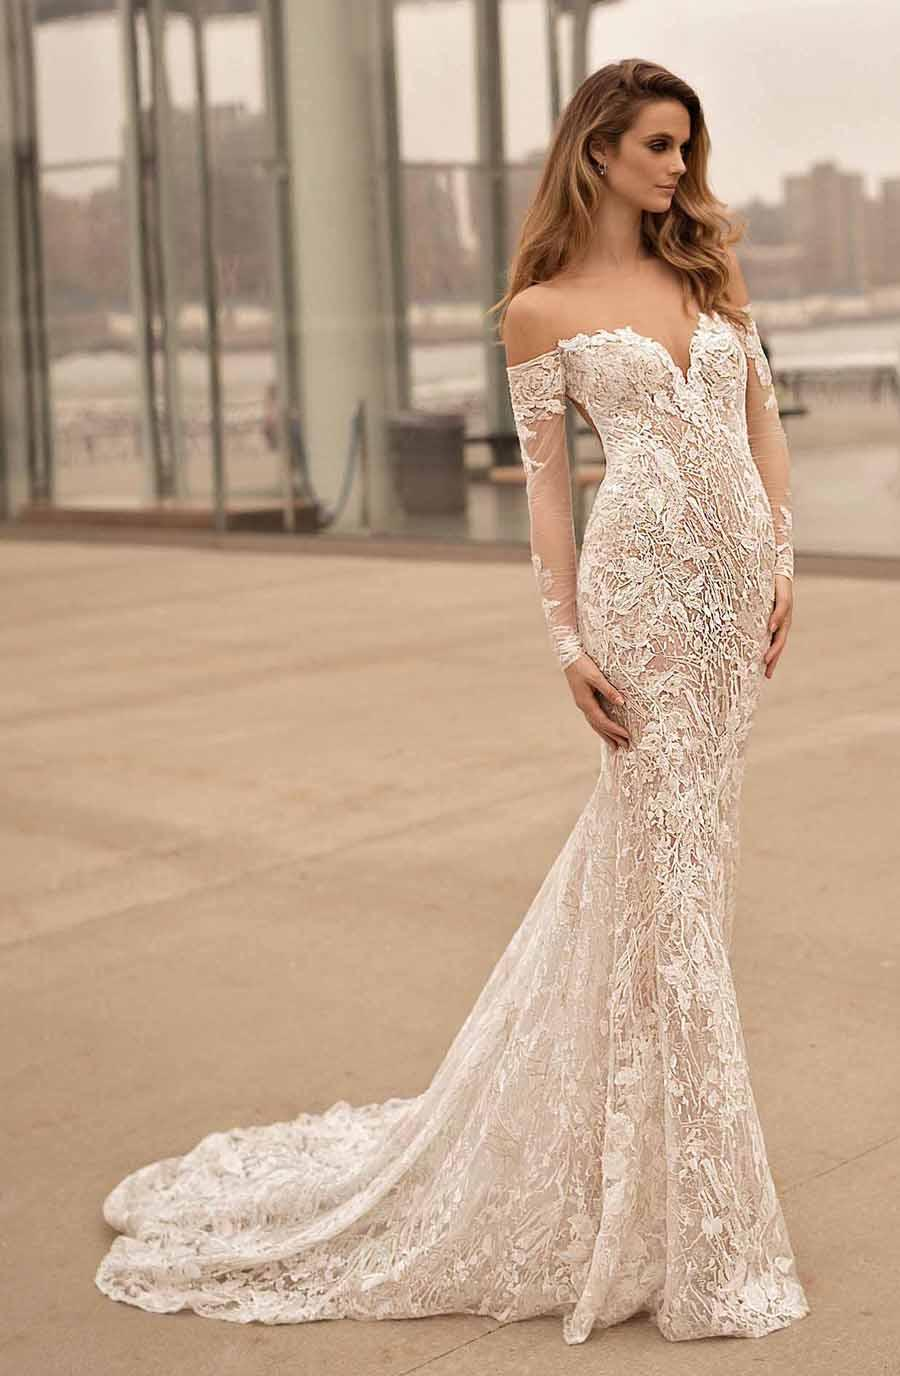 Long Sleeves Off The Shoulder Wedding Dresses 2017 Berta Bridal ...